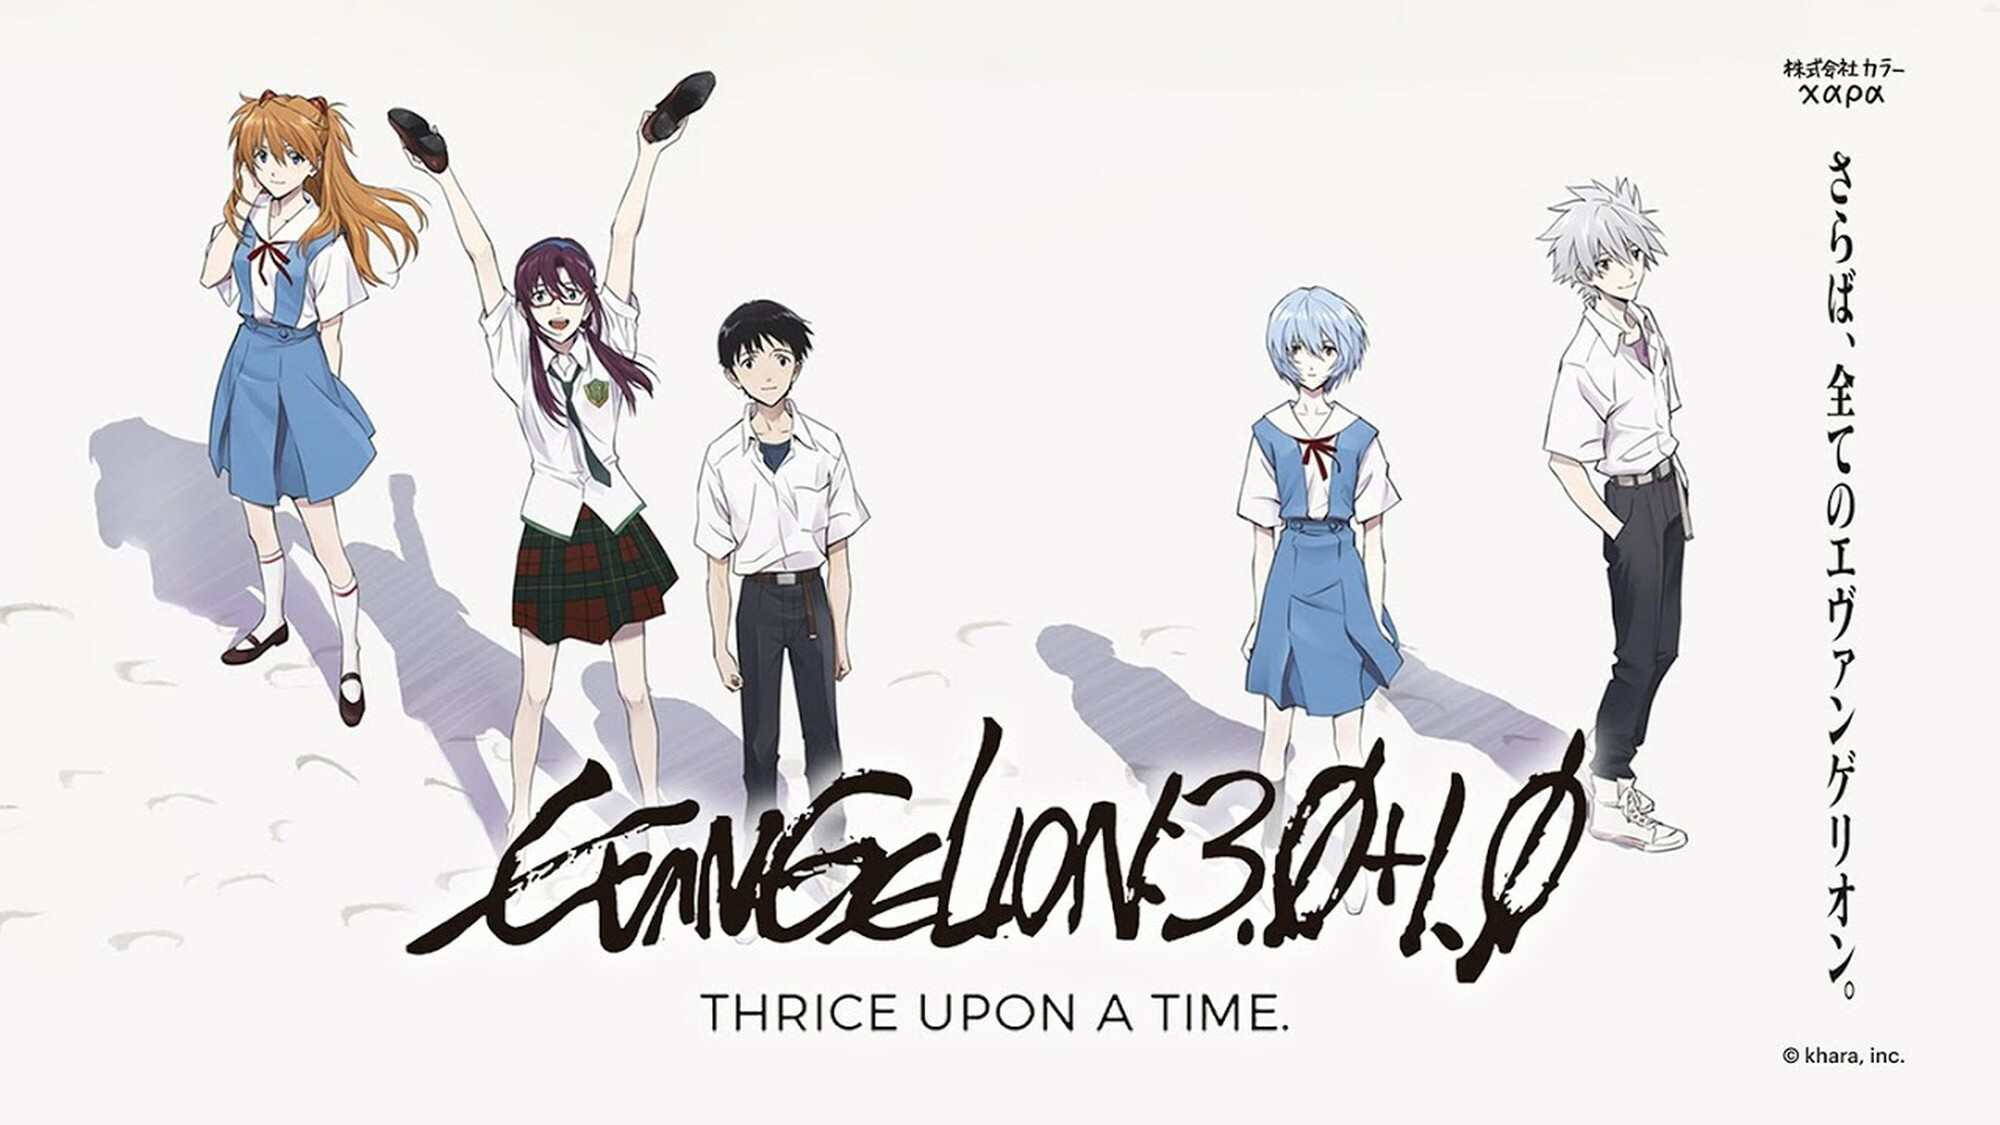 Evangelion: 3.0+1.0 Gets Rebuilt Version In Japanese Theaters For 'Last Run'